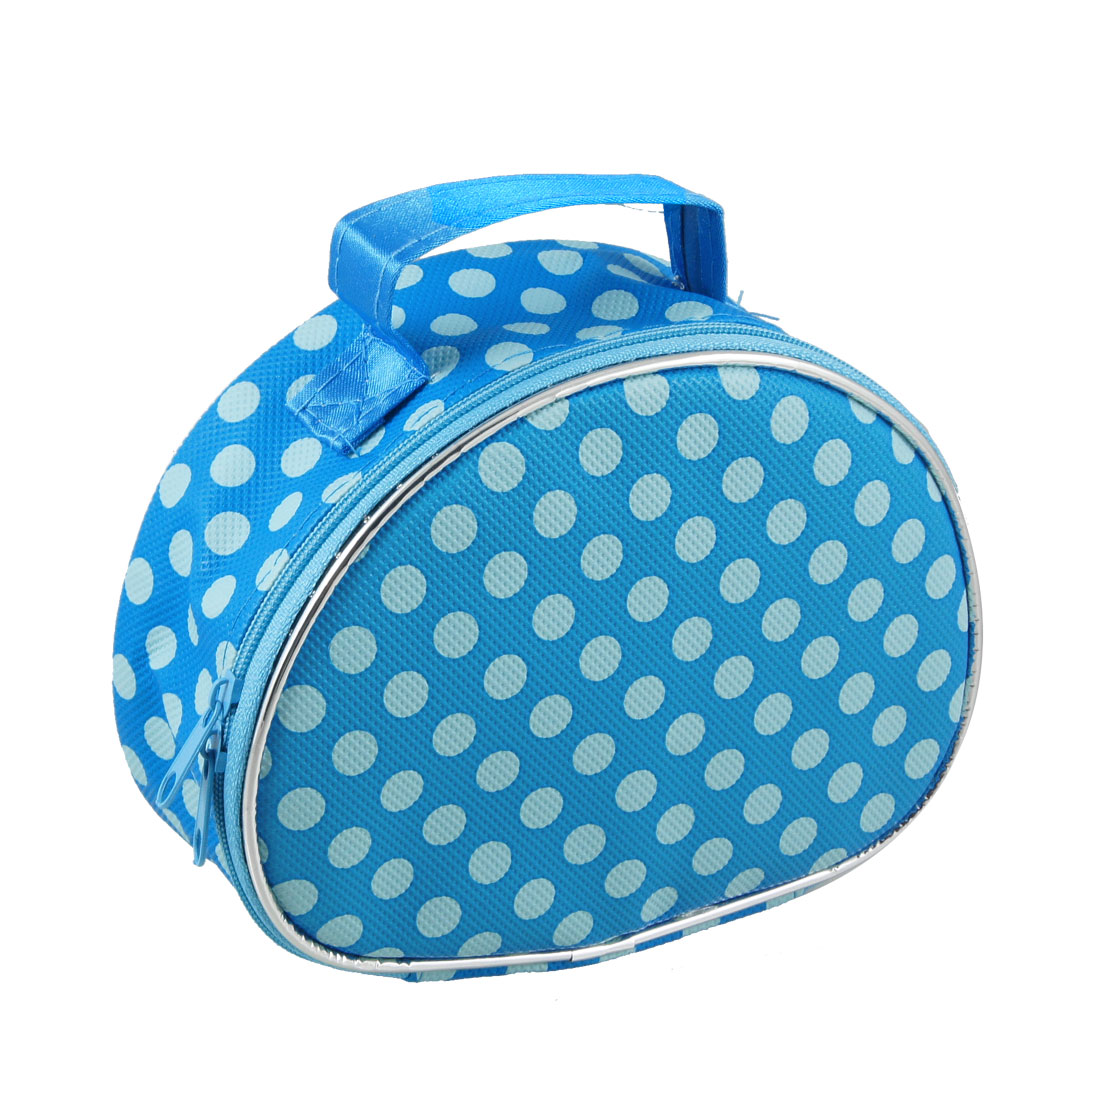 Dots Print Zip Closure Two Tone Blue Cosmetic Holder Container